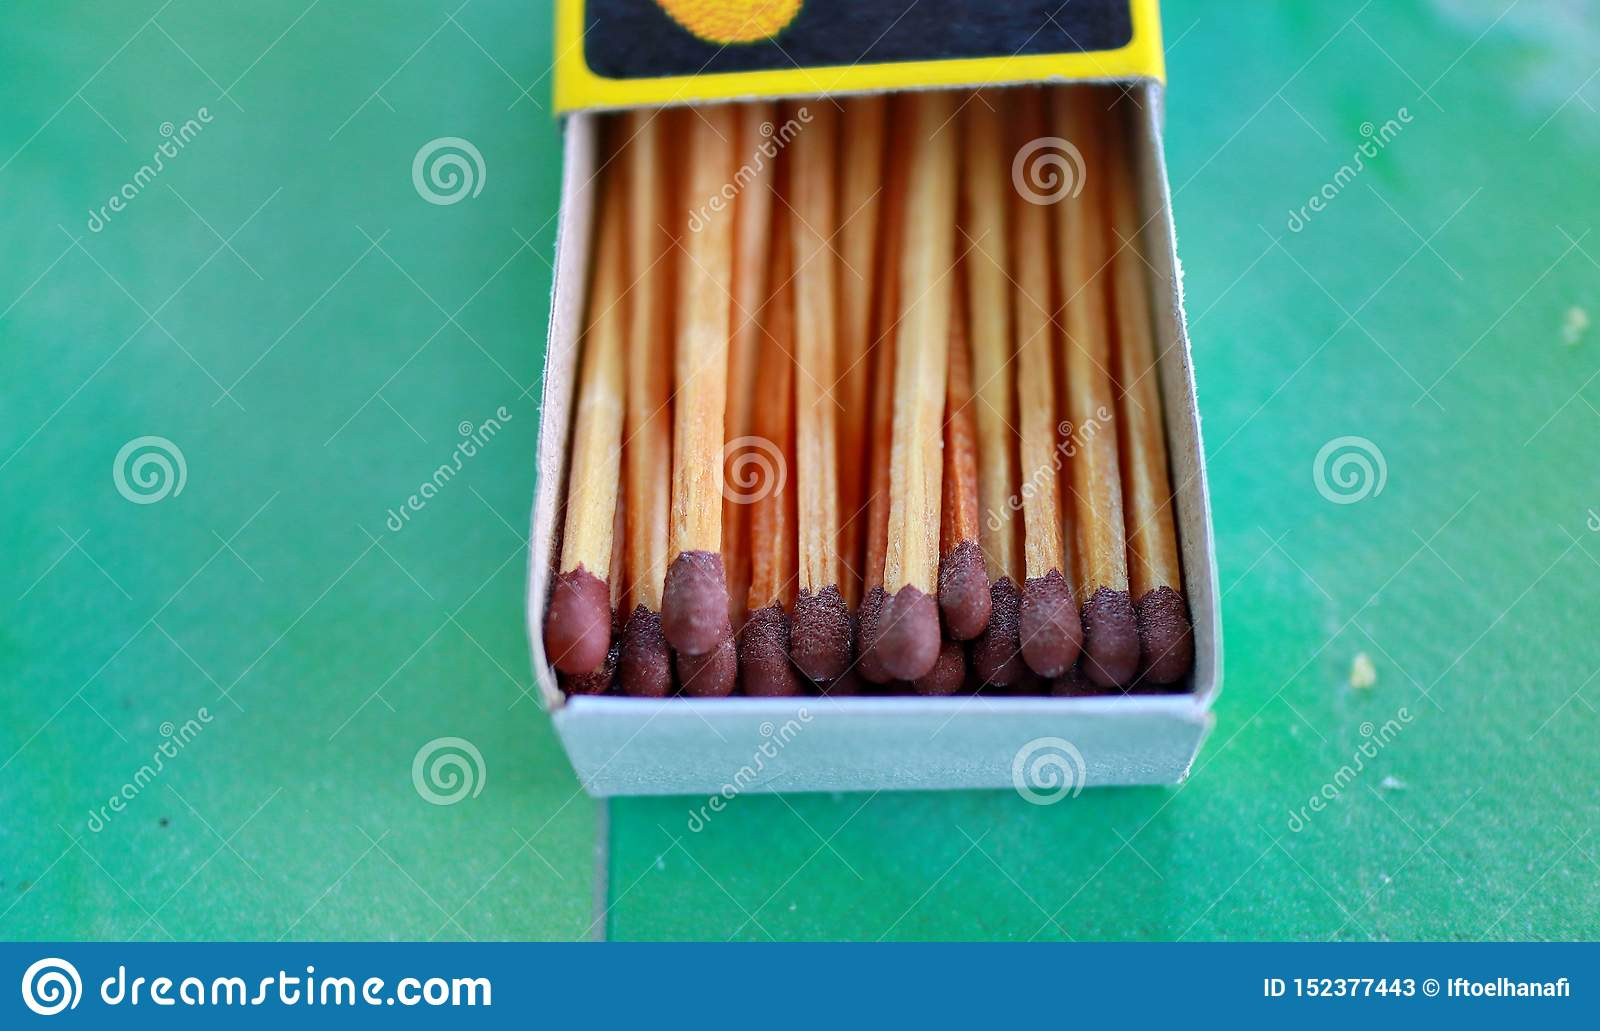 Matches in box, green background.